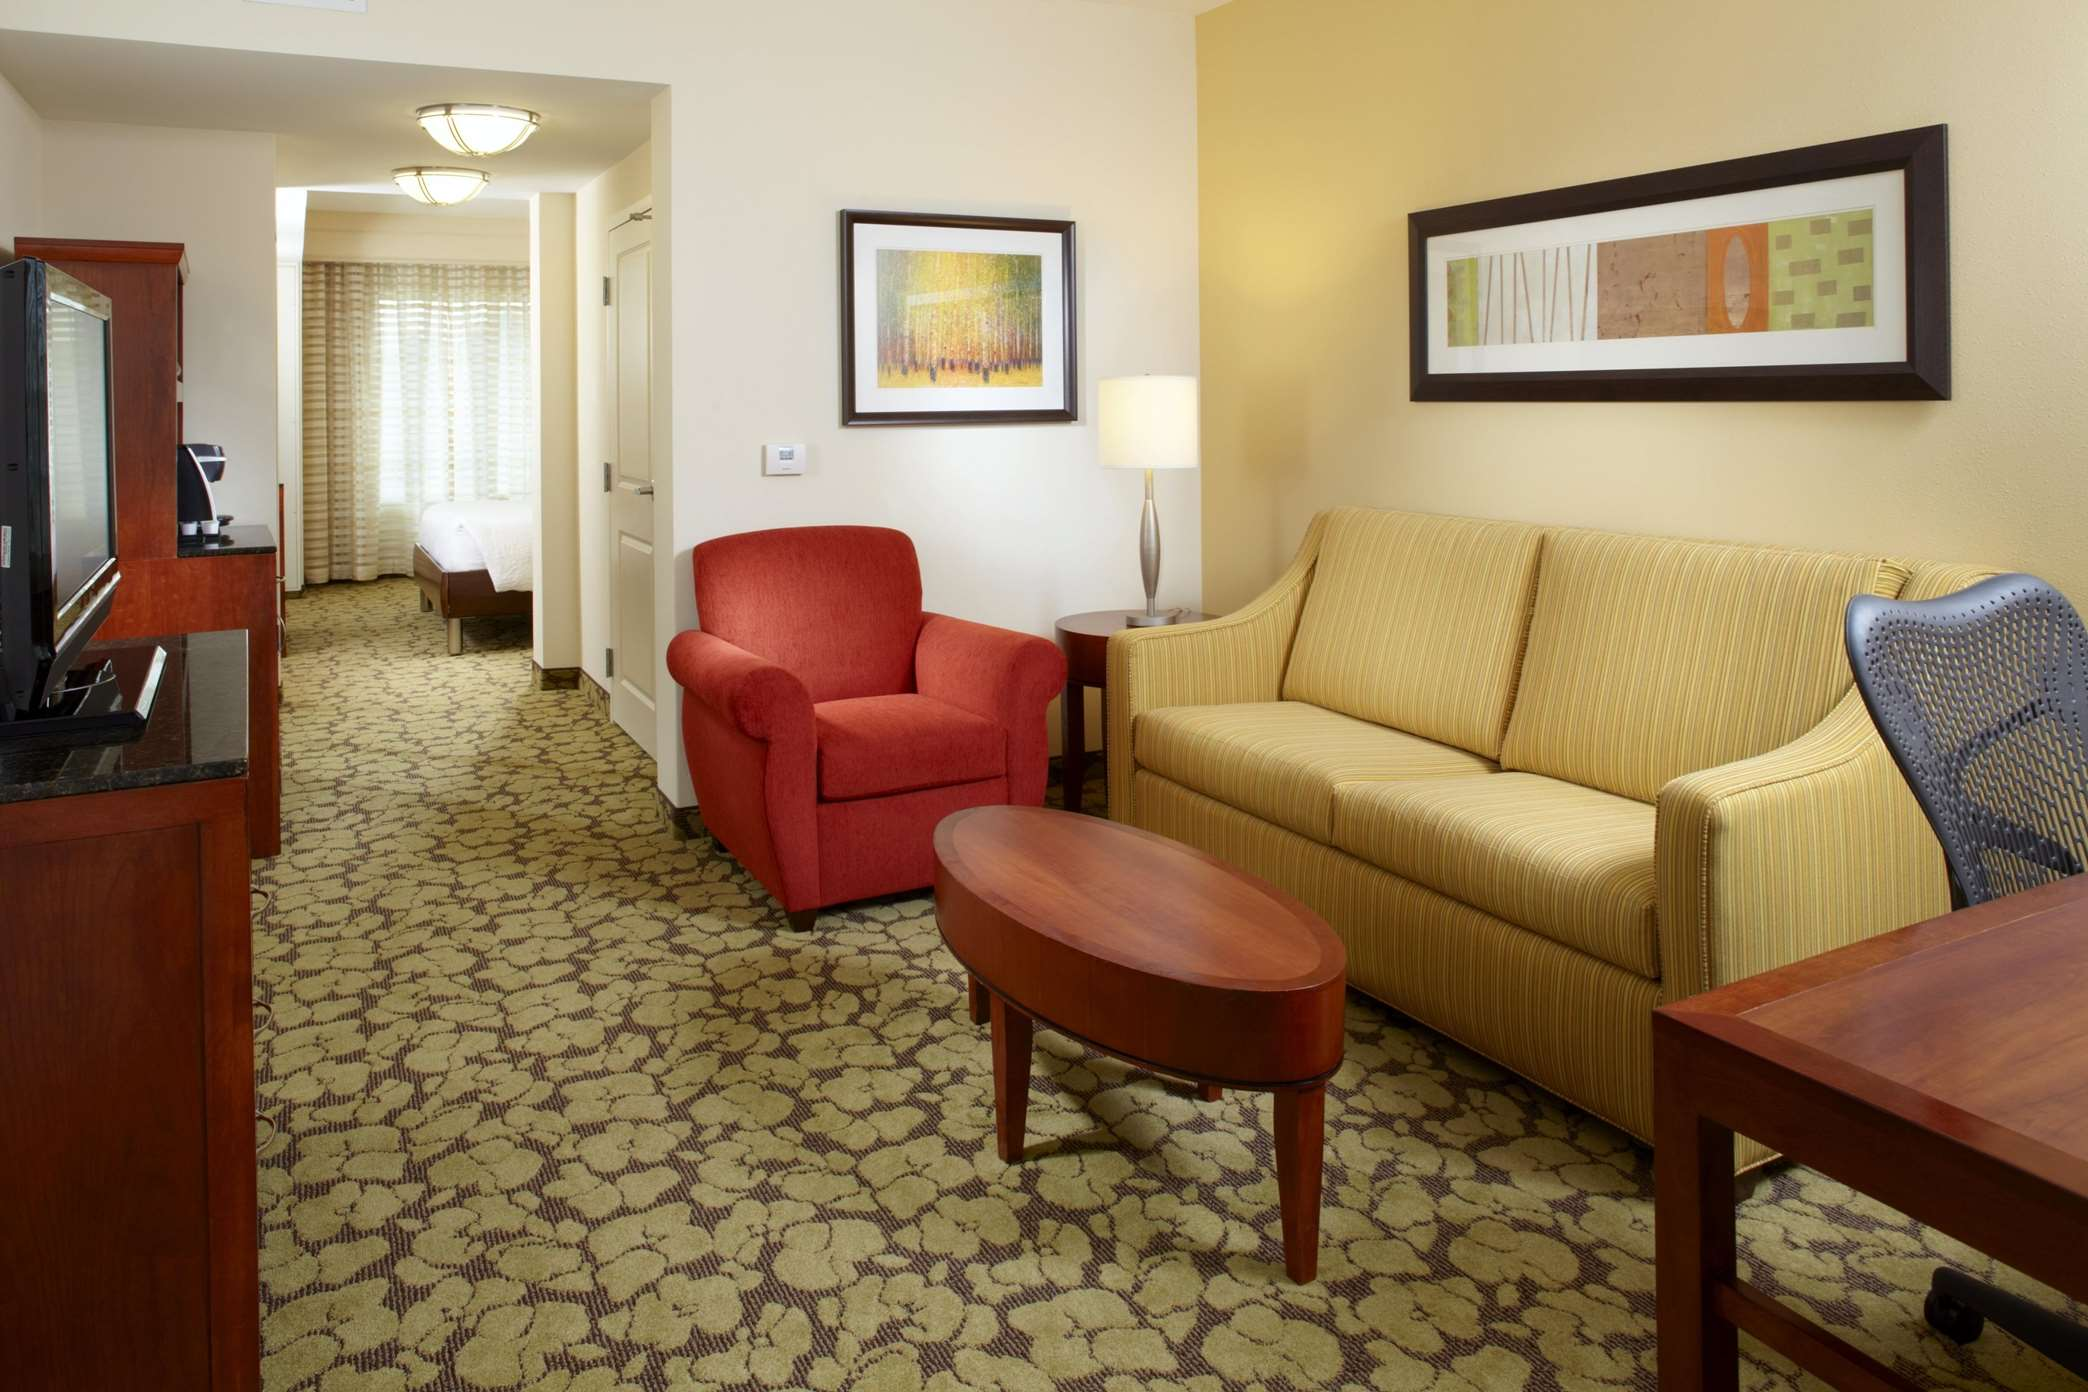 Hilton Garden Inn Dallas/Arlington image 37